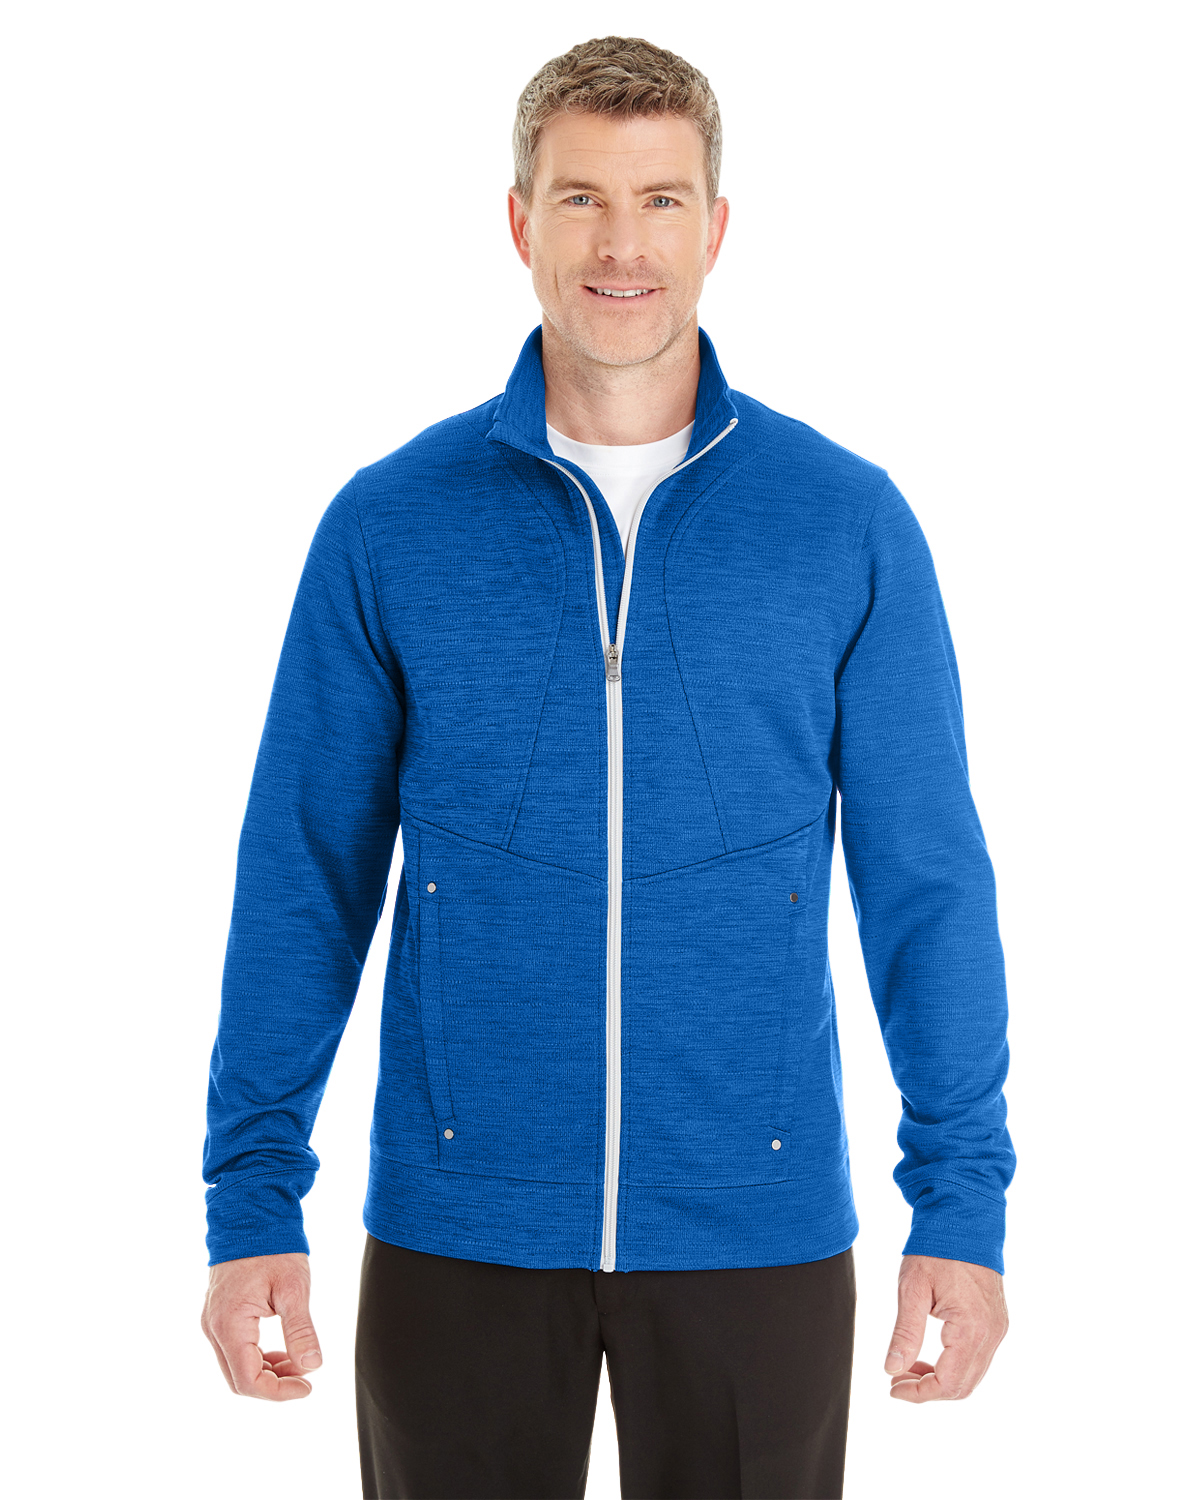 Ash City - North End NE704 - Men's Amplify Melange Fleece ...